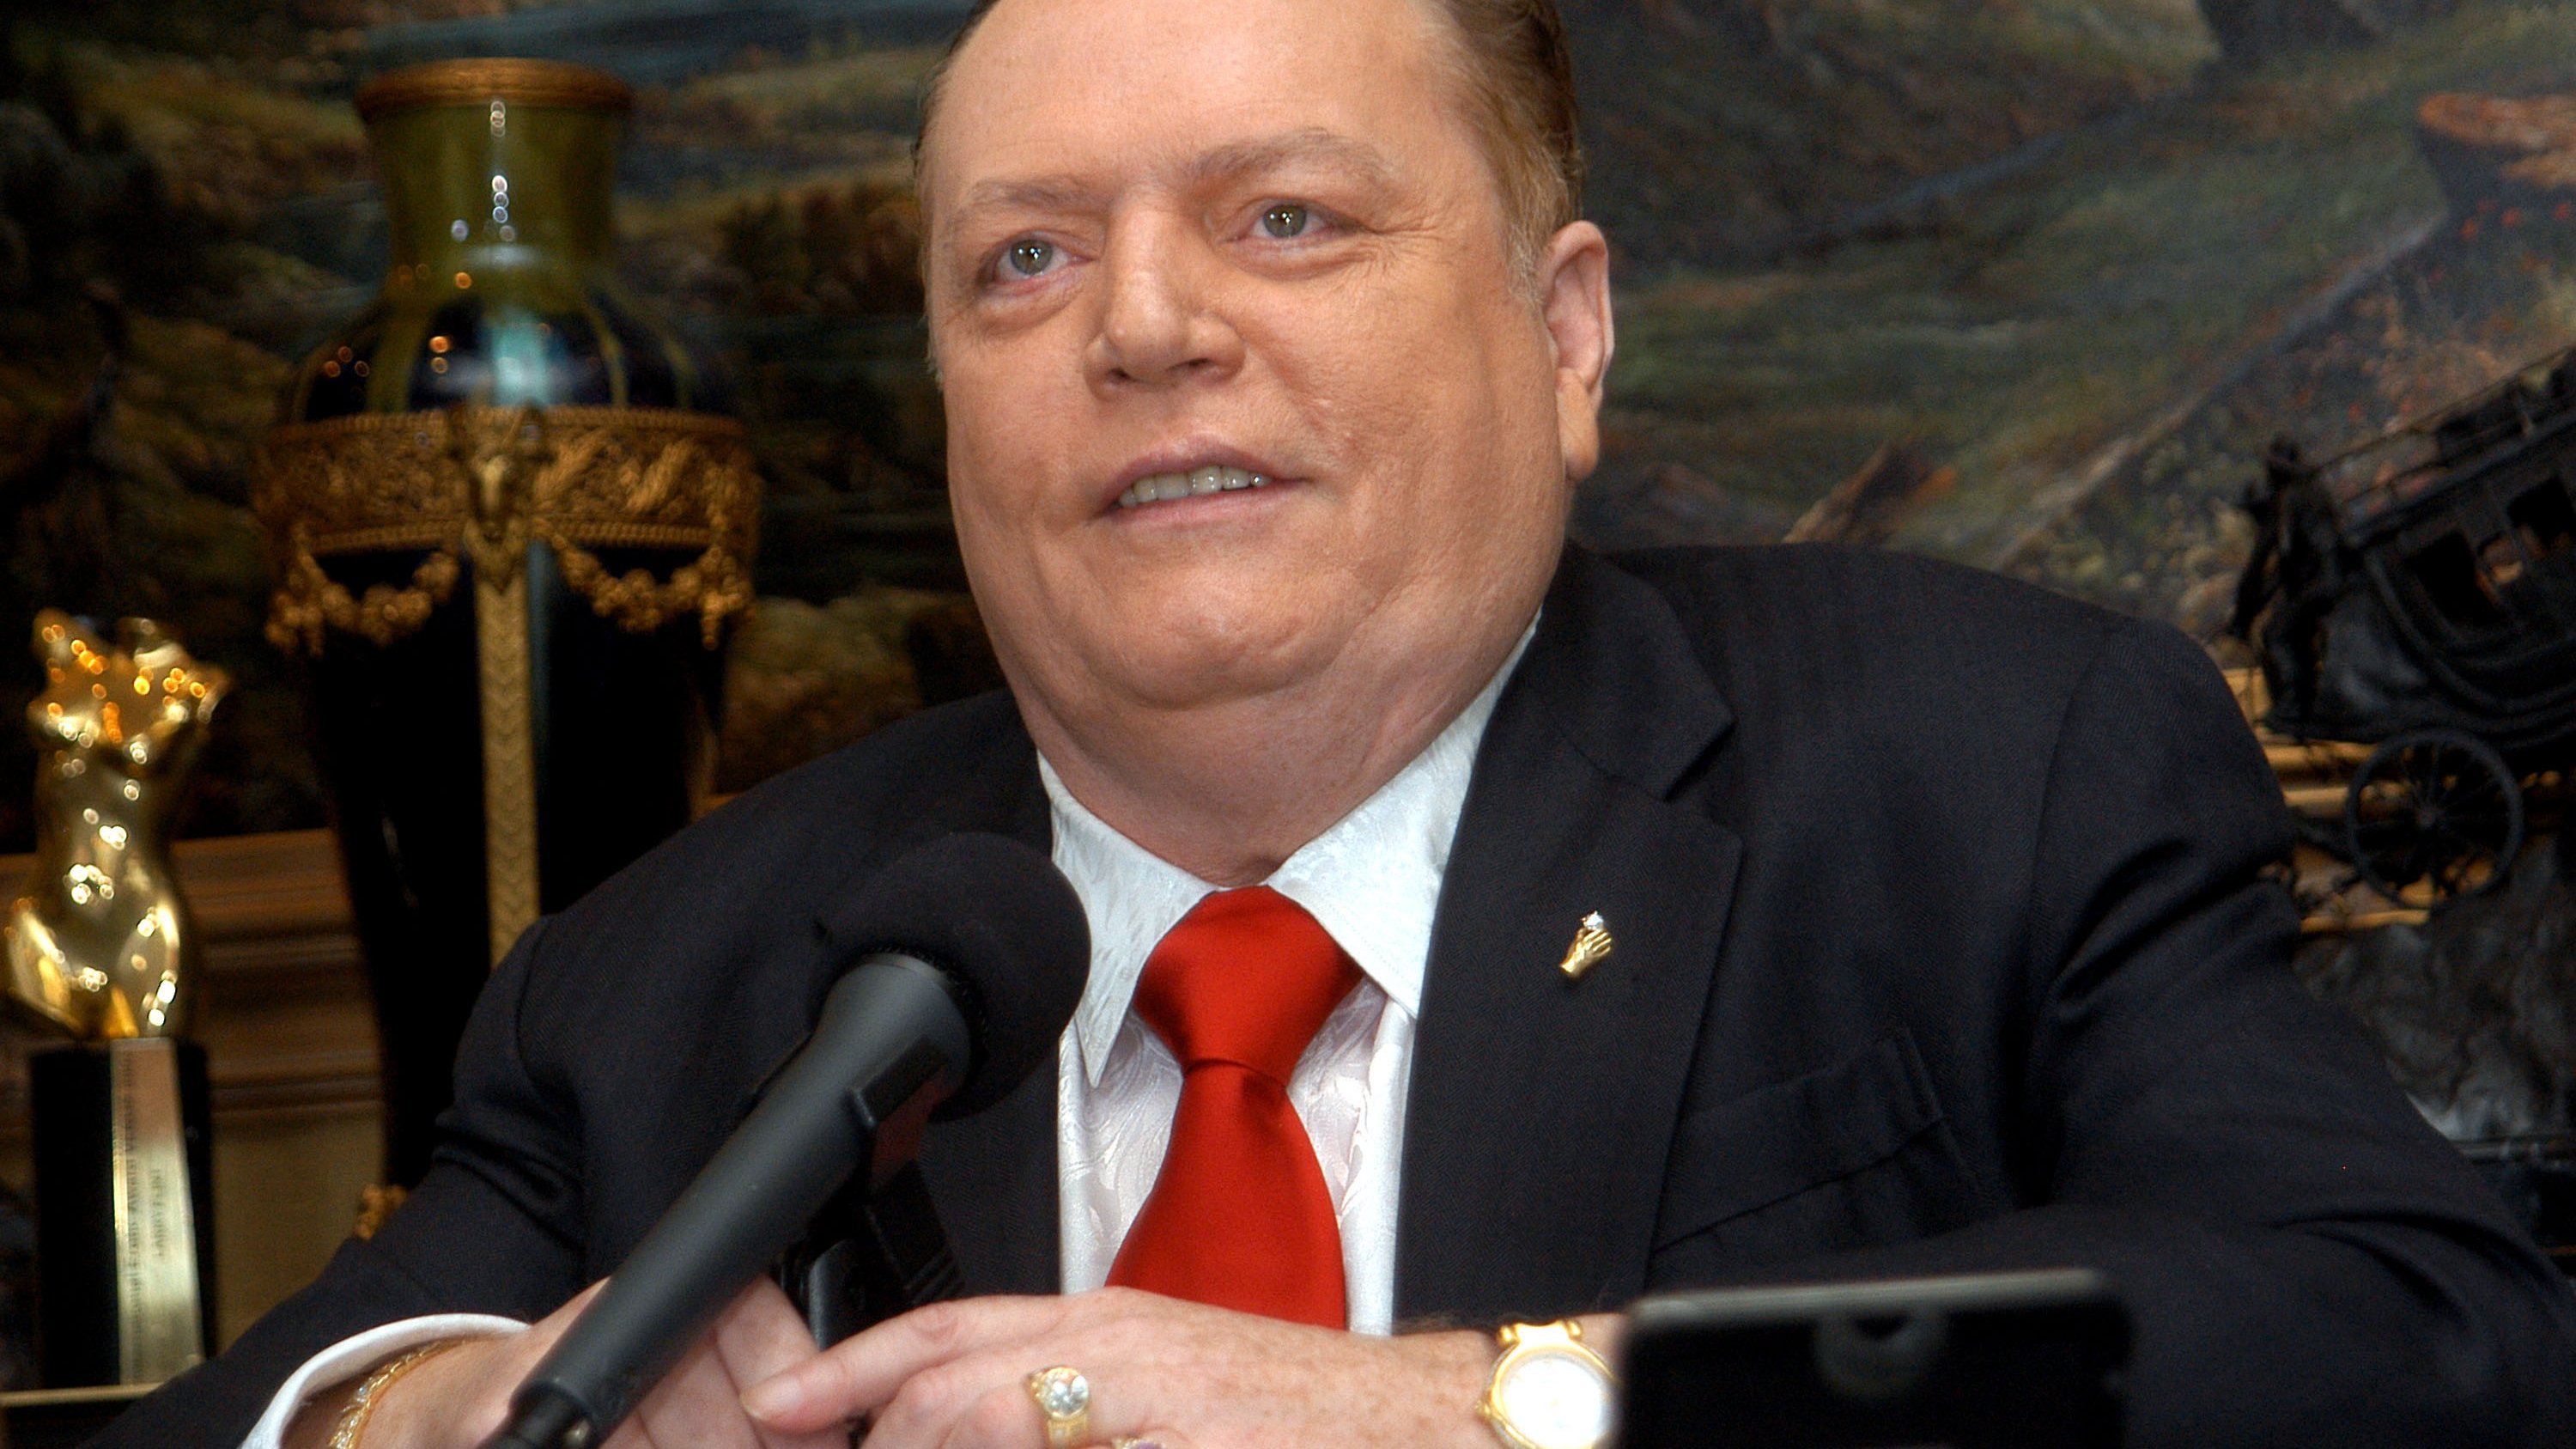 Publisher Larry Flynt Announces His Official Run For California Governor's Recall Election